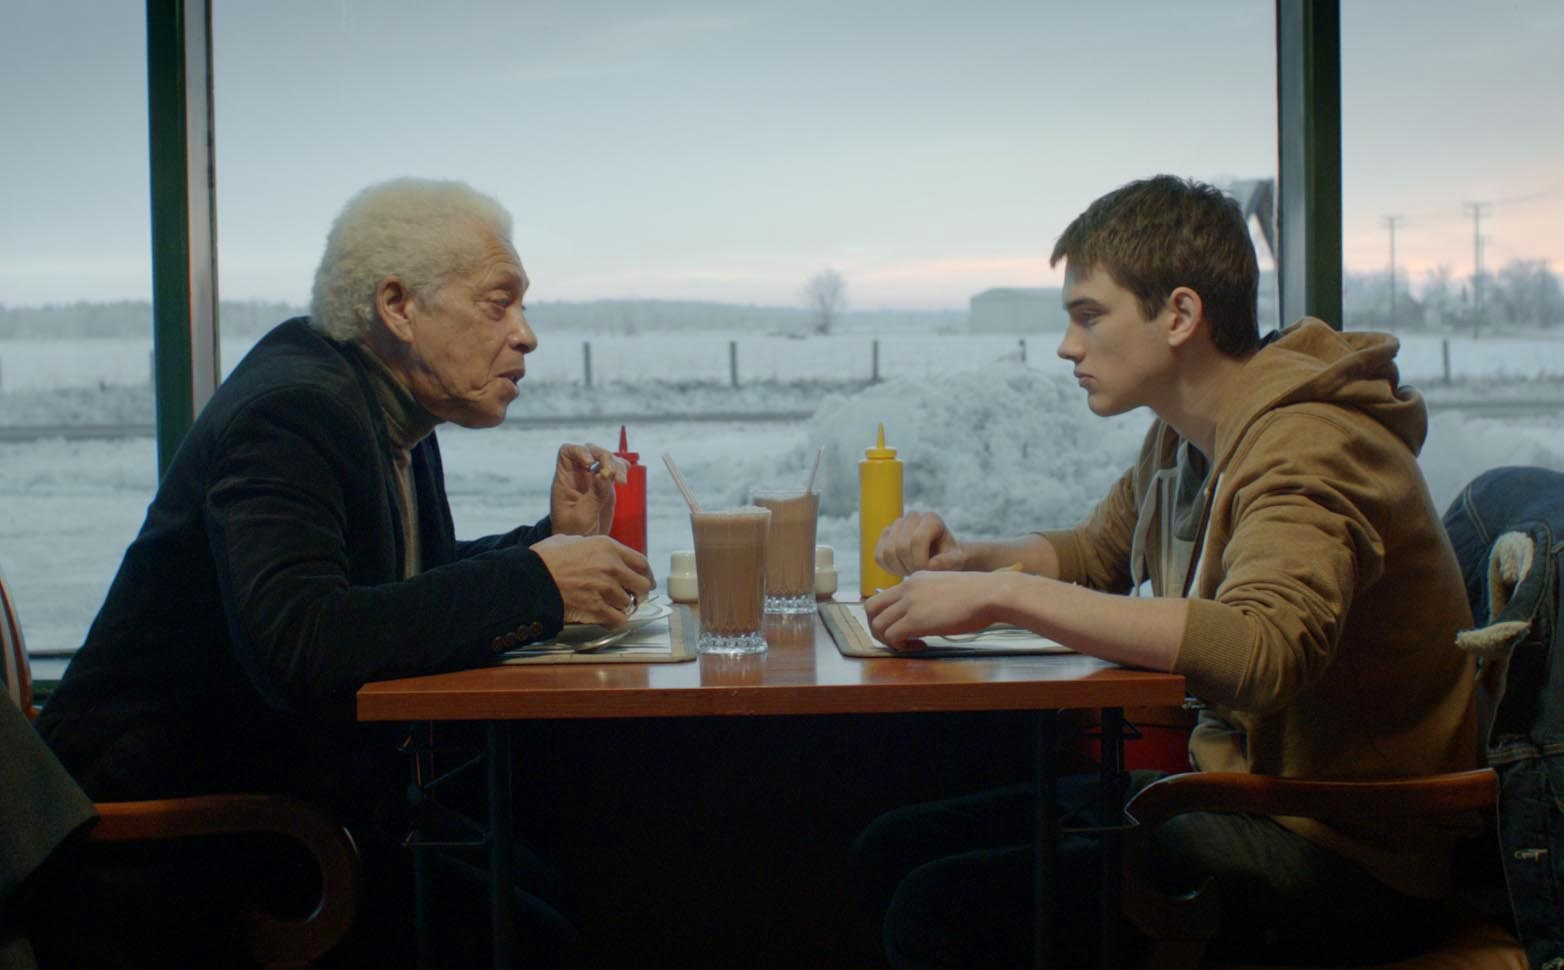 16_GERONTOPHILIA_Filmoption©2013_screengrab.jpg